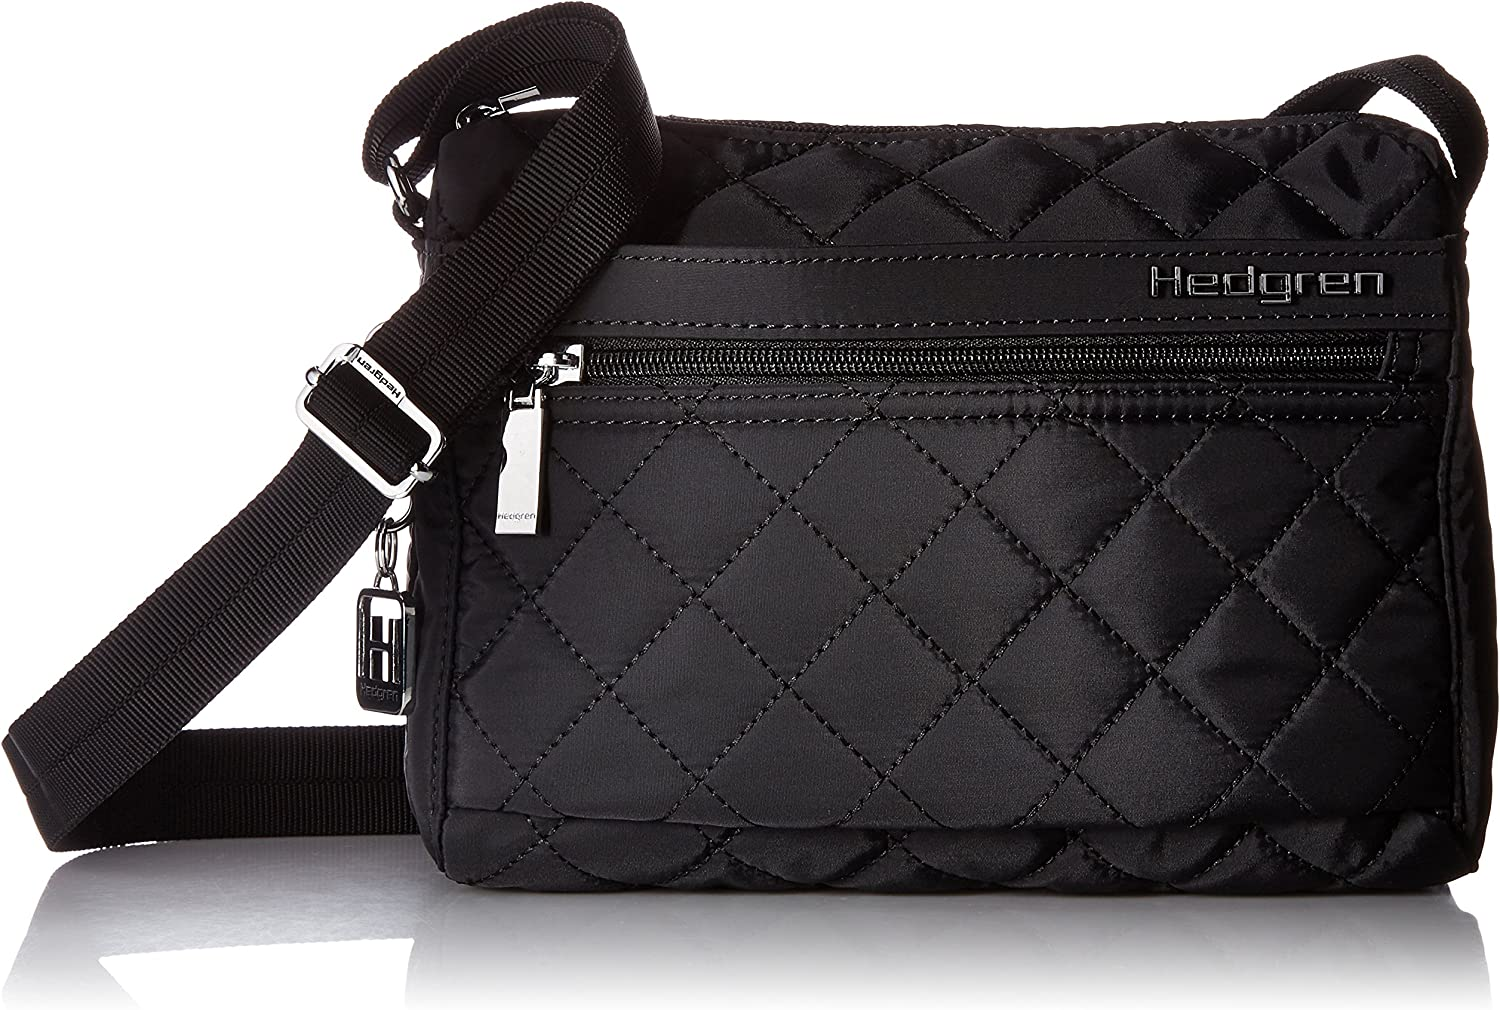 Hedgren Carina Crossbody Shoulder Bag, Purse with Adjustable Strap and 5 Pockets, 9 x 3.5 x 7 Inches, Womens, Black